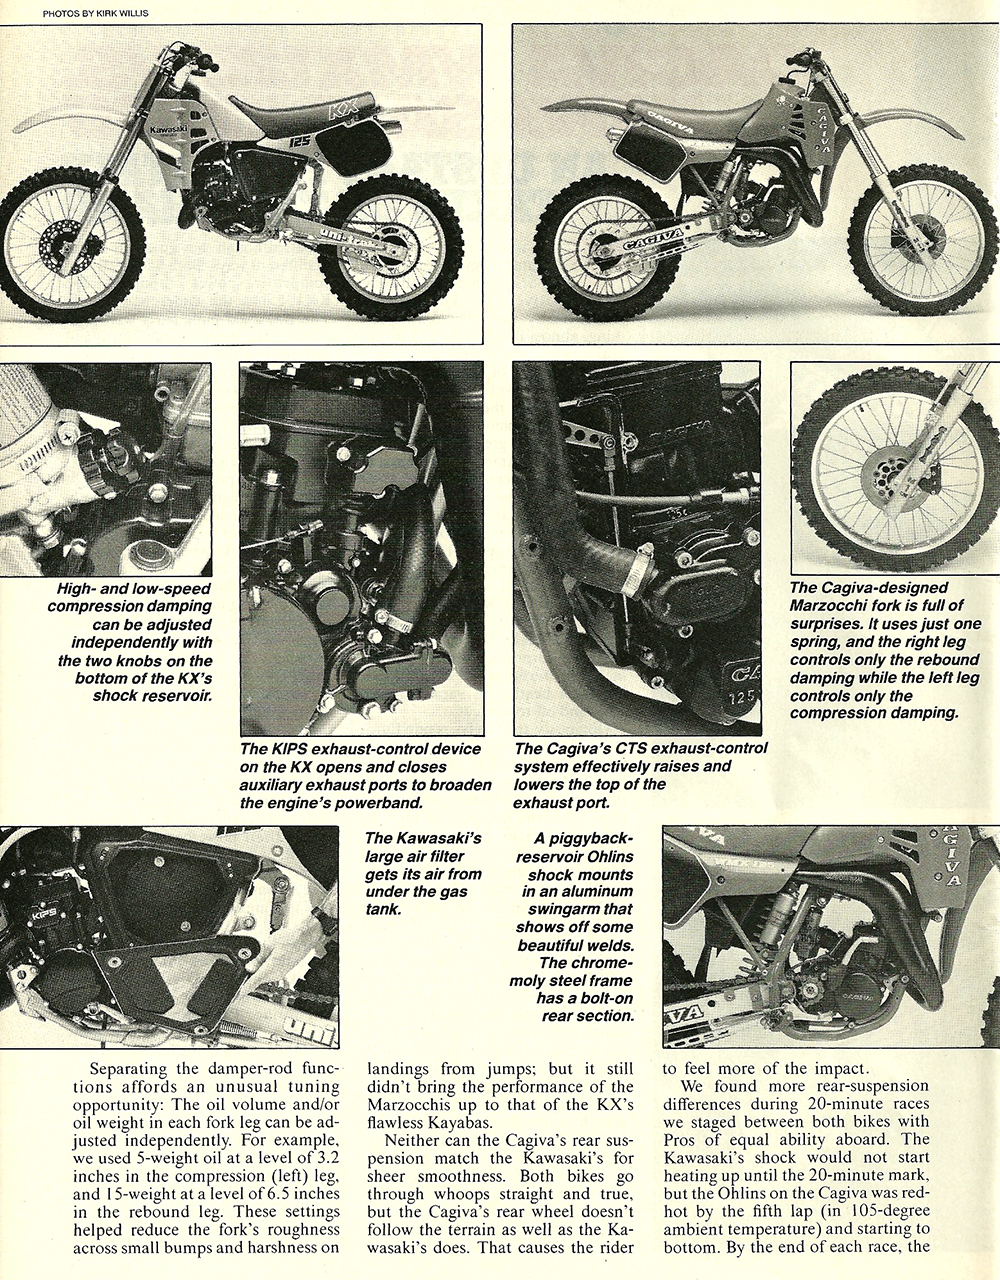 1985 Cagiva wmx125 vs Kawasaki kx125 road test 03.jpg